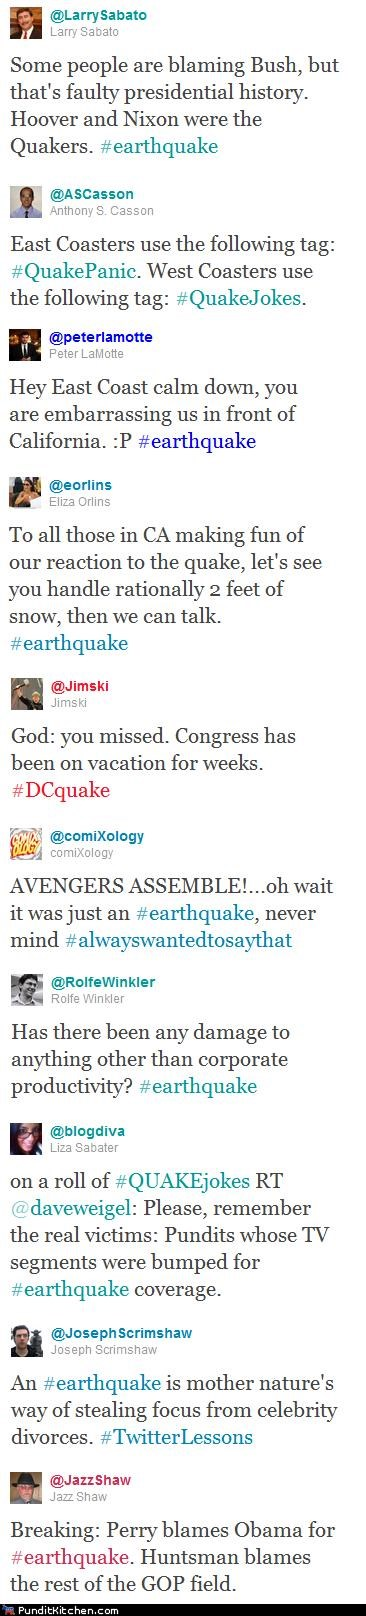 earthquake new york city political pictures twitter washington dc - 5121399552